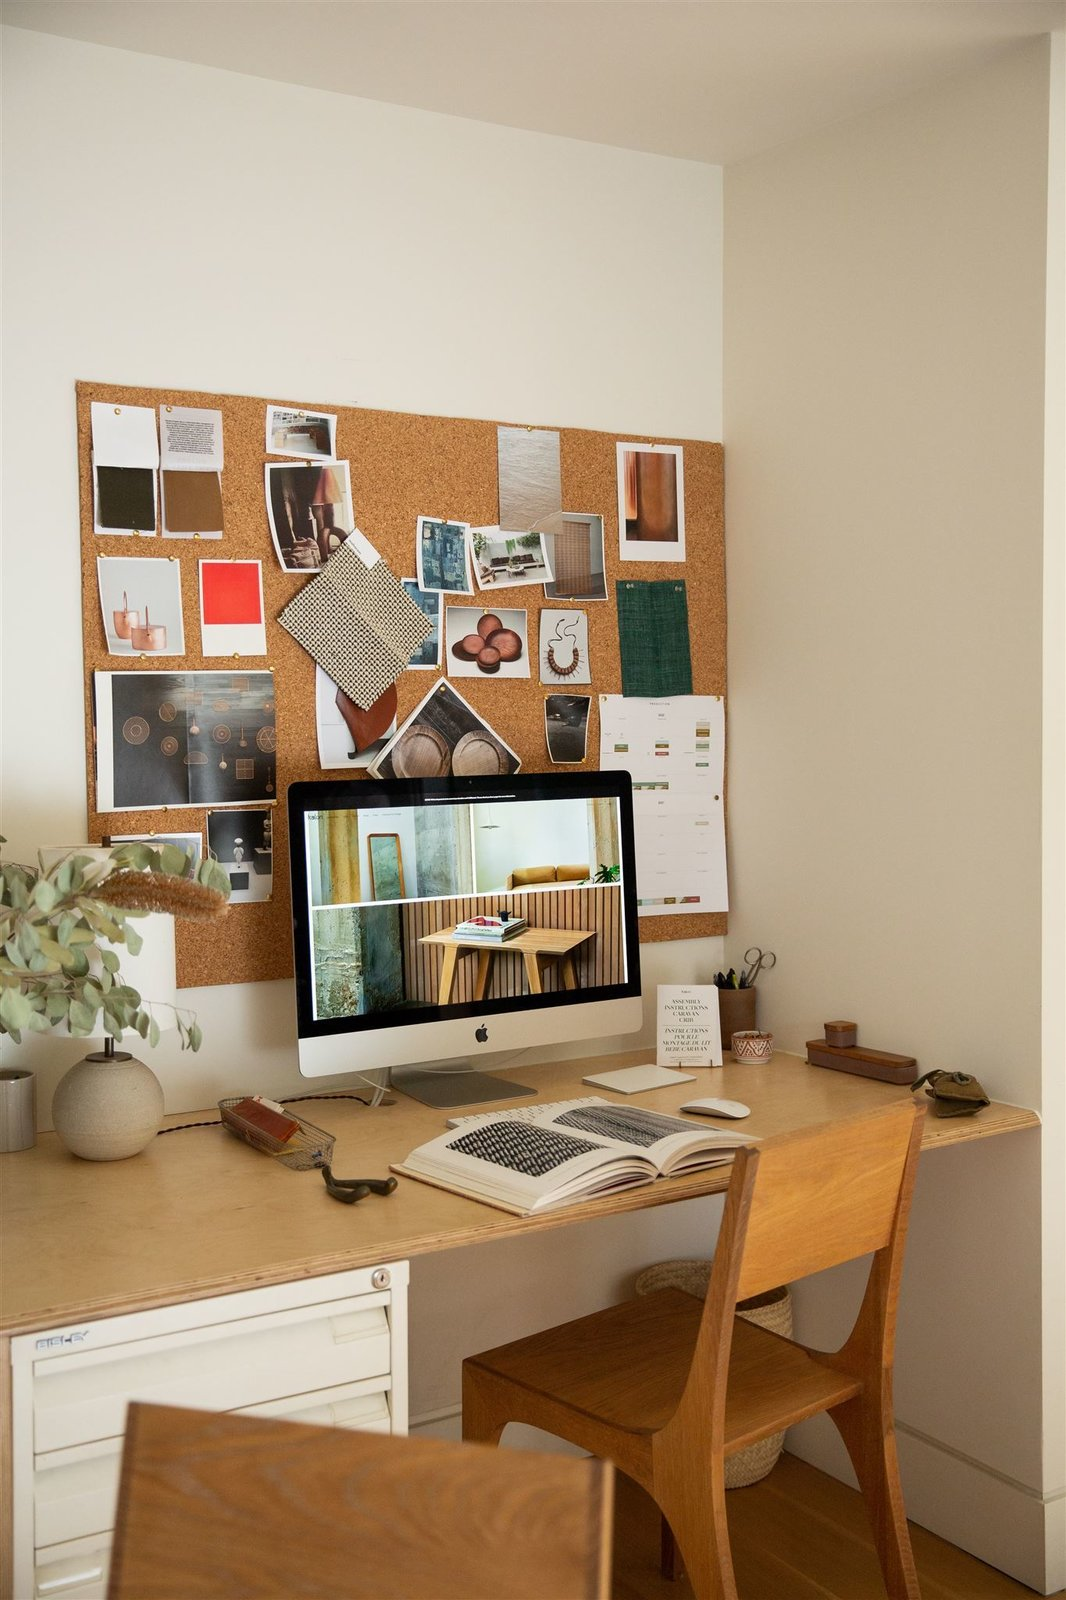 We Asked 13 Designers to Share Their Work From Home Setups and Tips for Making Your Own